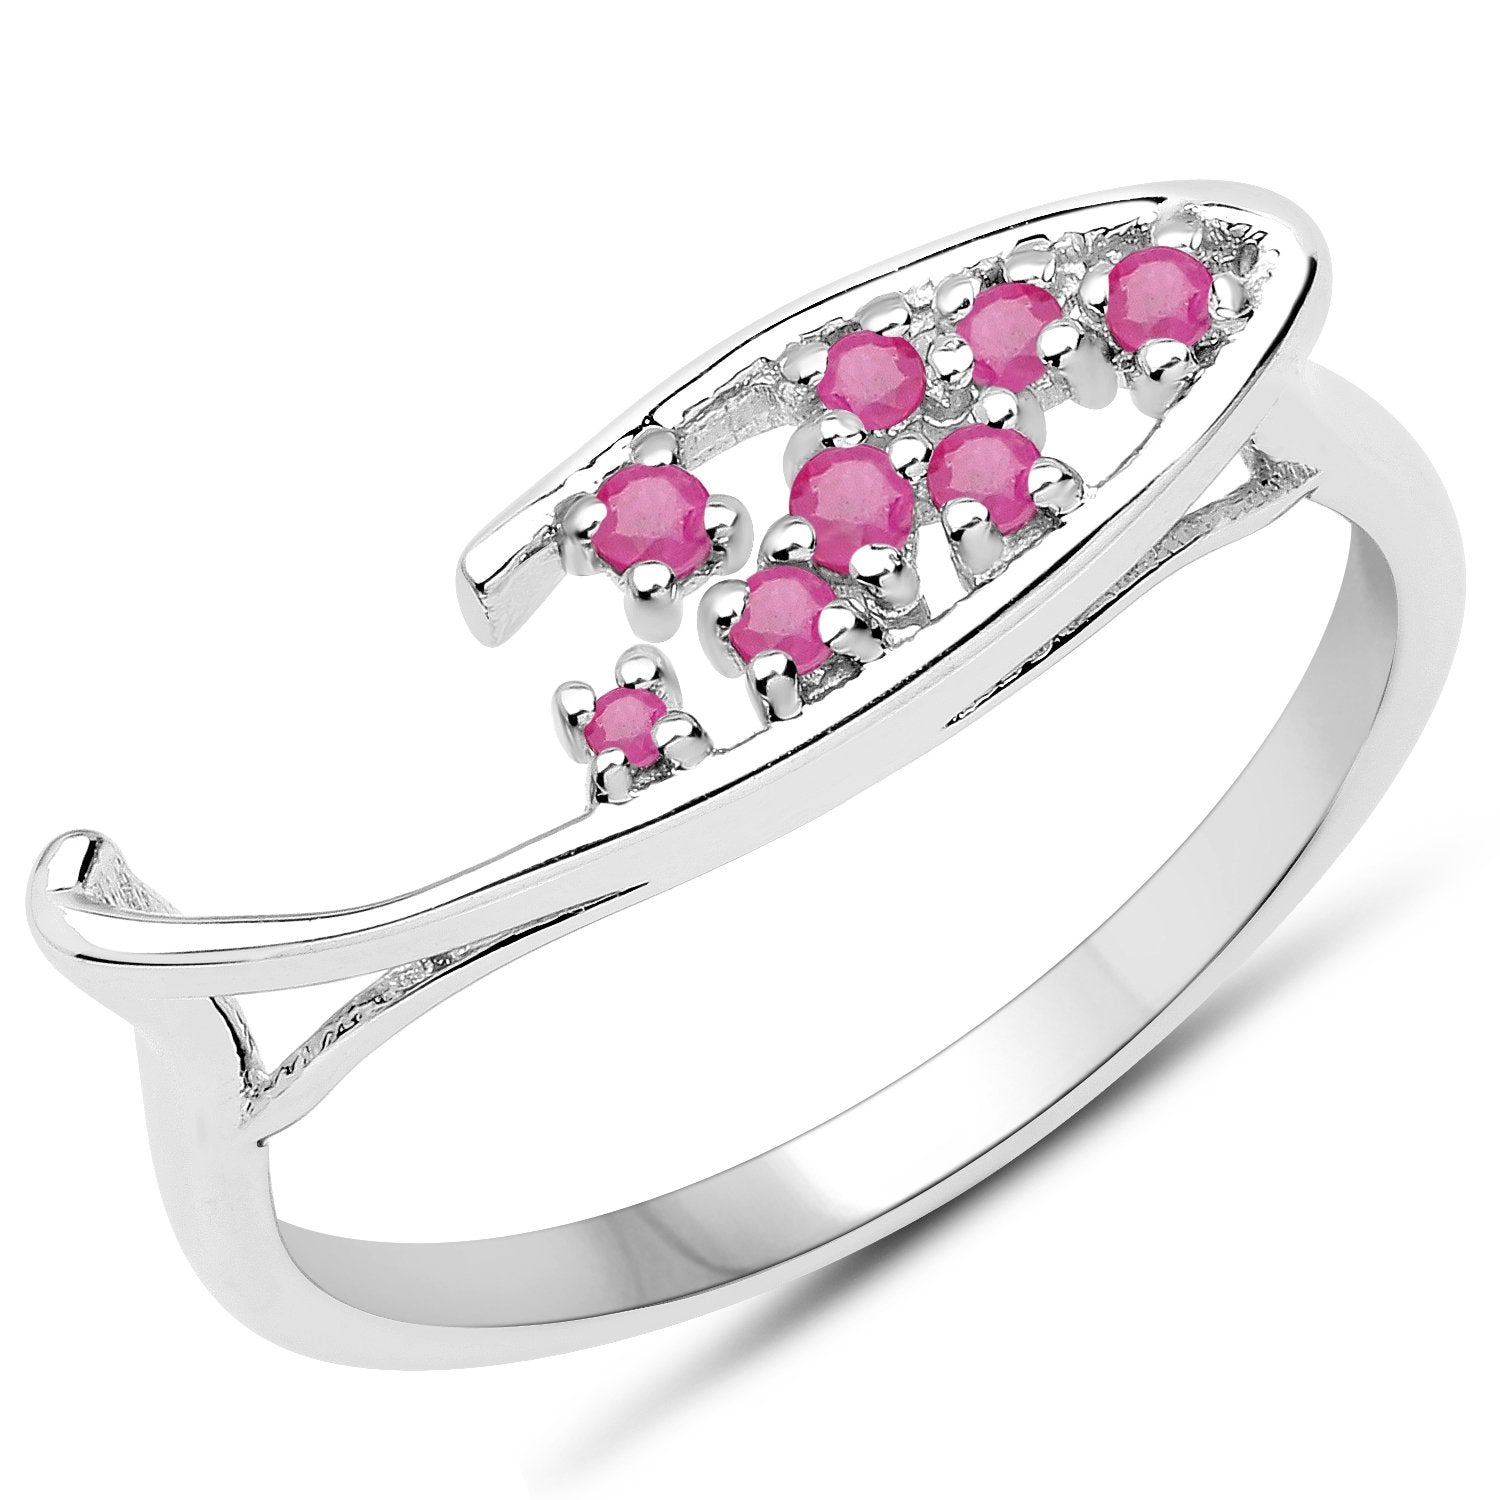 LoveHuang 0.15 Carats Genuine Ruby Ring Solid .925 Sterling Silver With Rhodium Plating